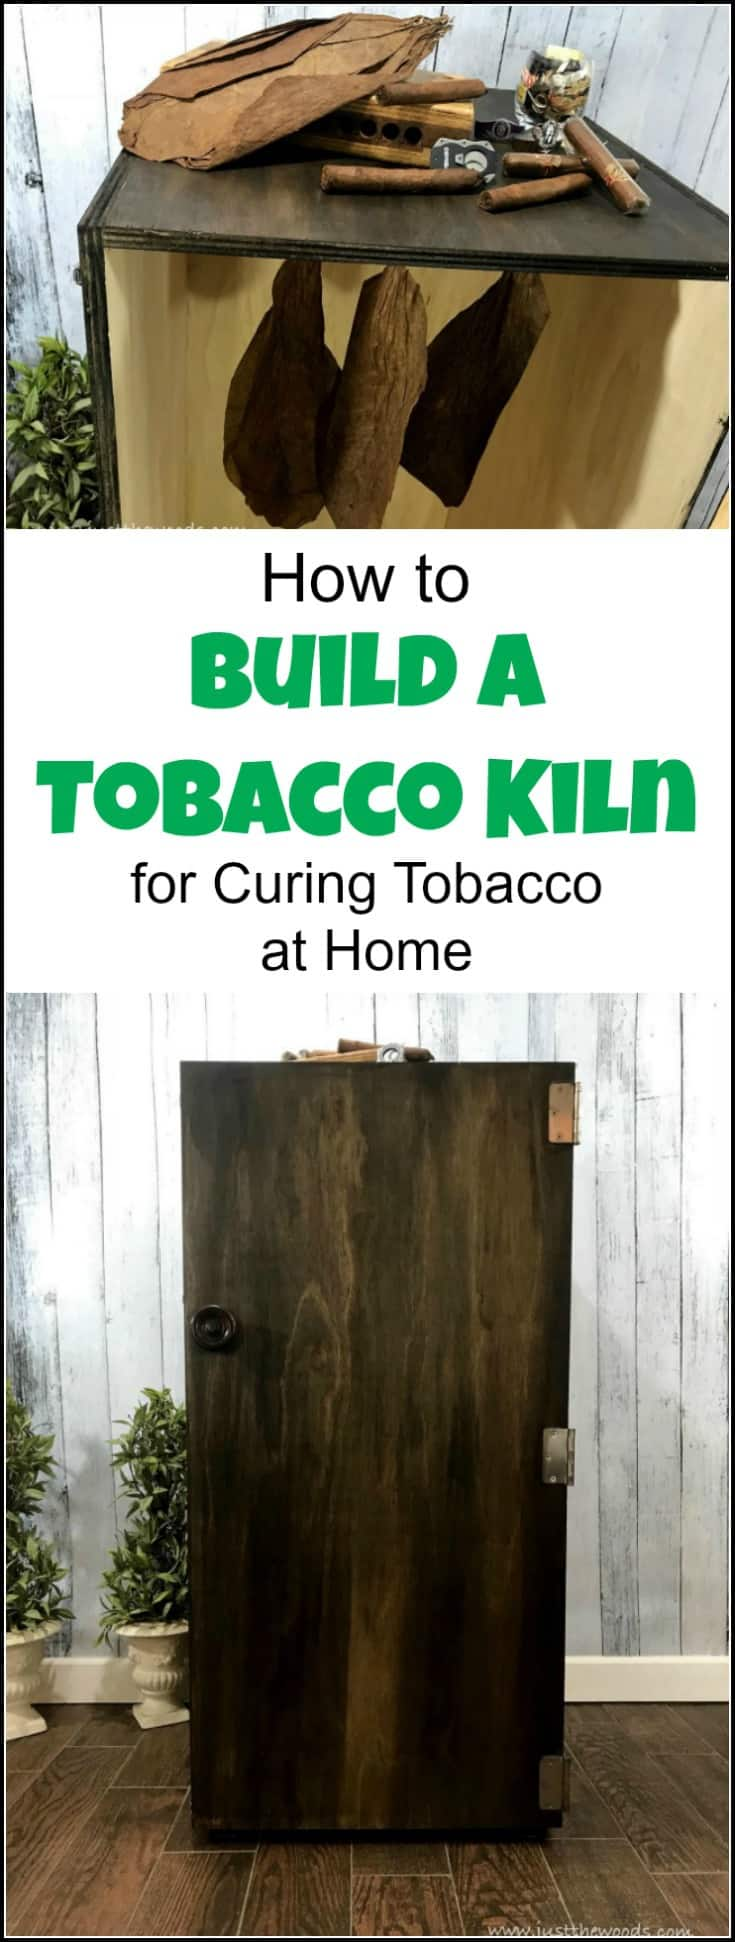 tobacco kiln, How to Build a Tobacco Kiln for Curing Tobacco, large tobacco curing kiln, DIY kiln, tobacco kiln, tobacco drying kiln, how to dry tobacco leaves at home, drying tobacco, DIY tobacco kiln, build a tobacco kiln, power tool challenge, cure tobacco at home, DIY kiln, wood tobacco kiln